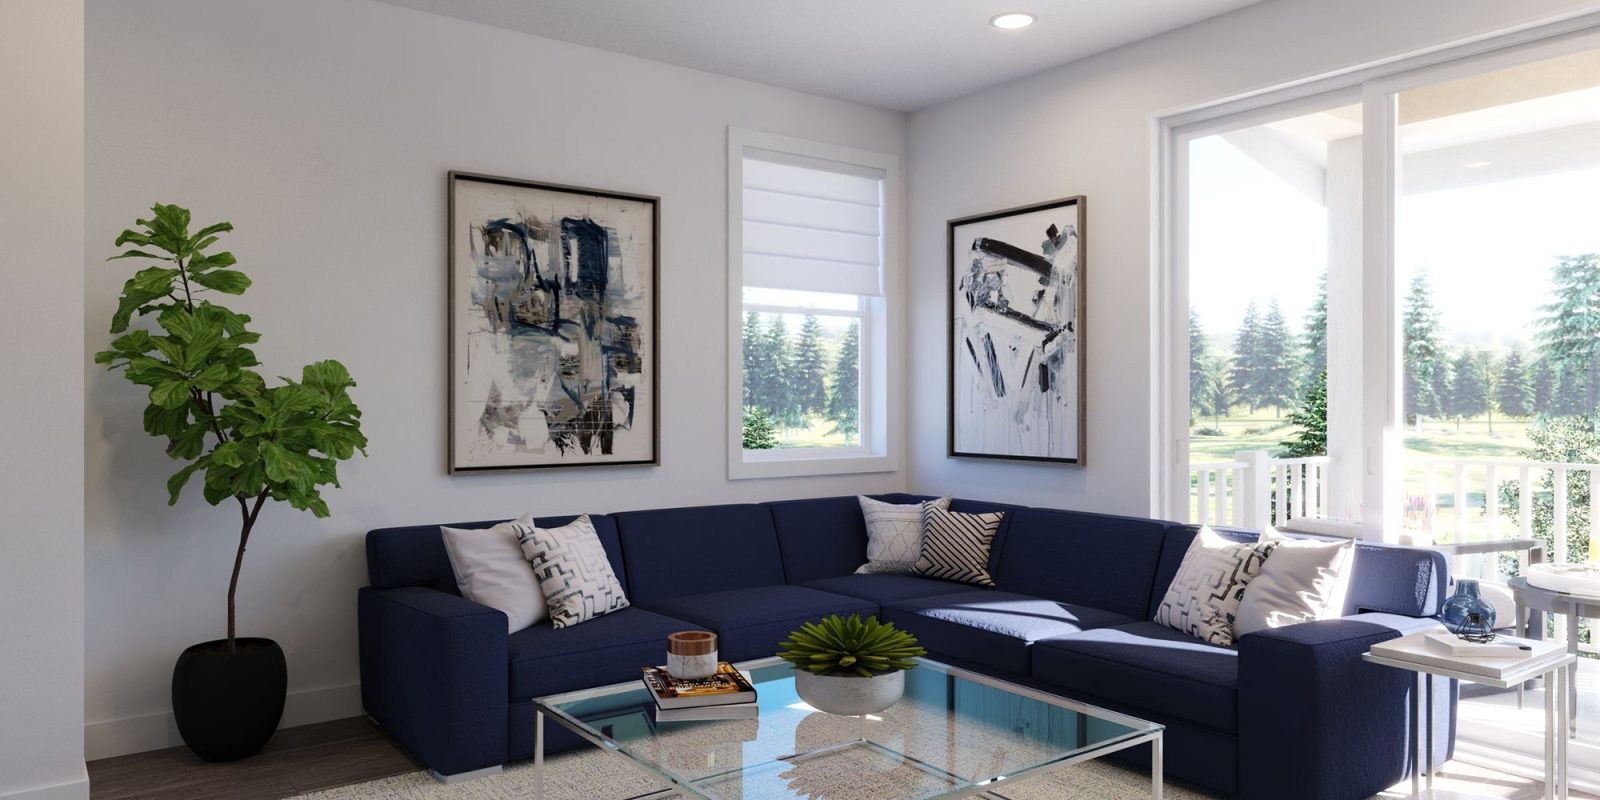 Baseline DoMore Rows: Oasis - Living Room